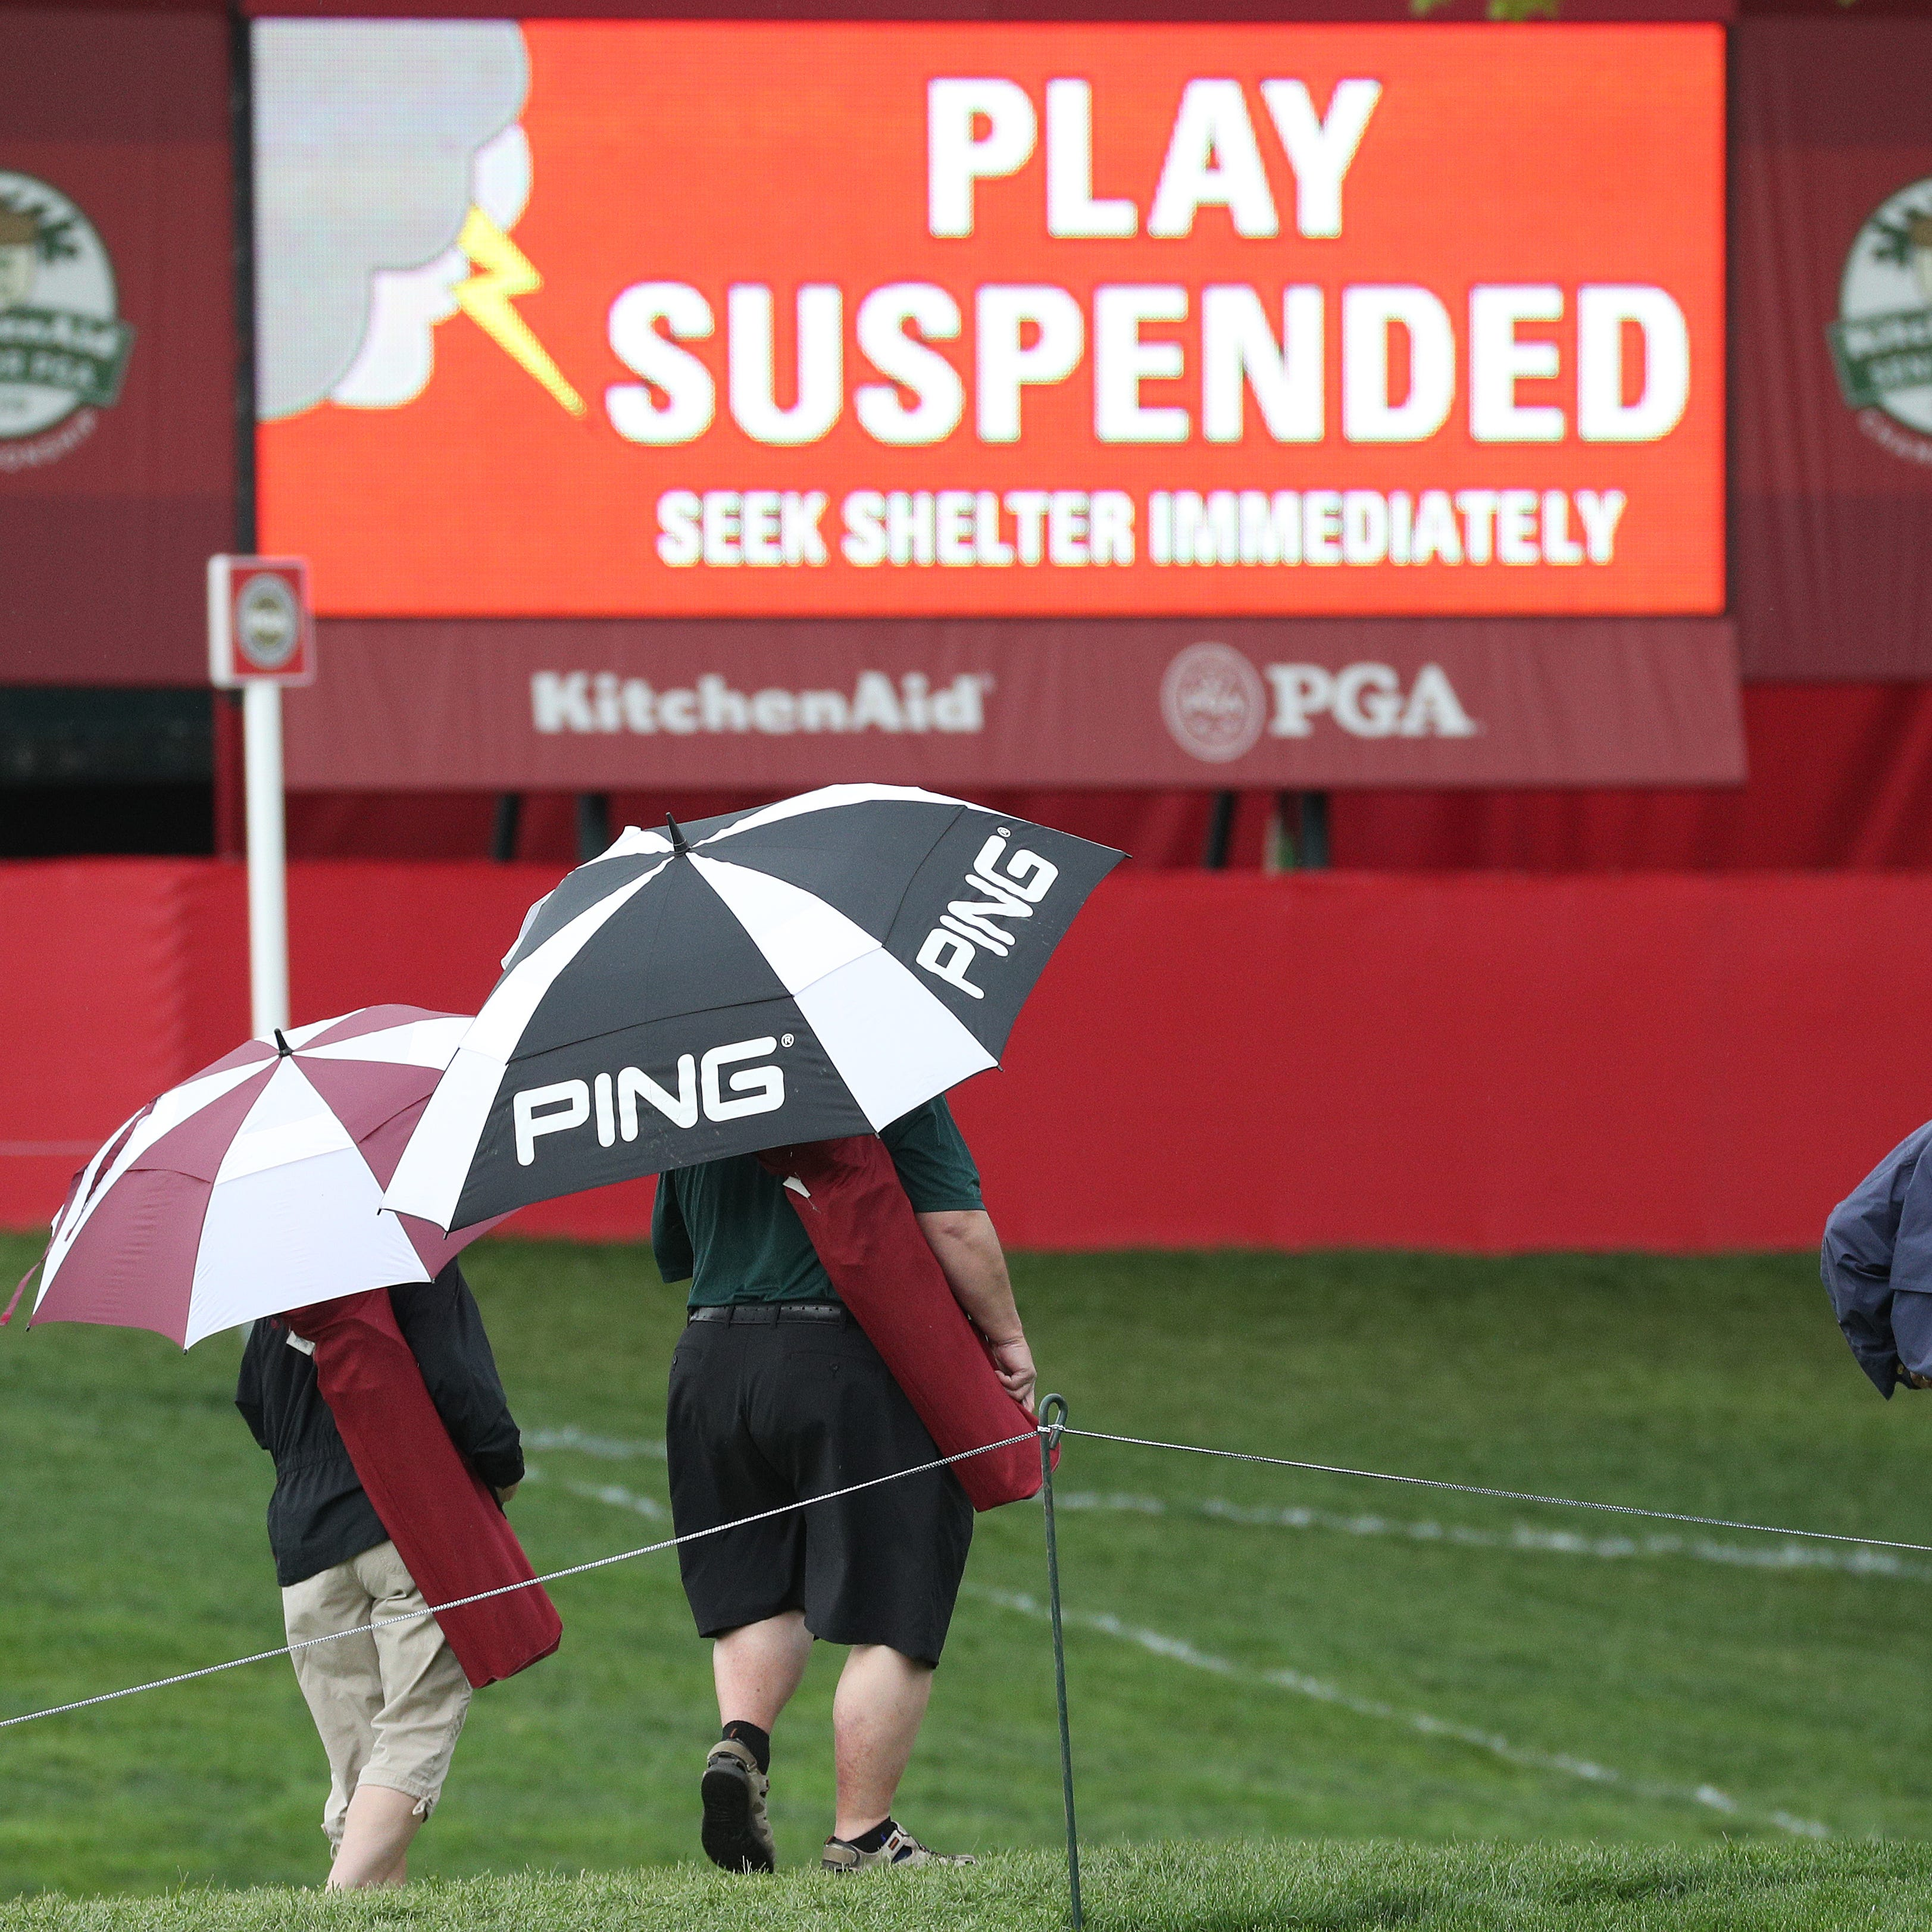 Senior PGA Championship Day 3: Play suspended at Oak Hill due to dangerous weather